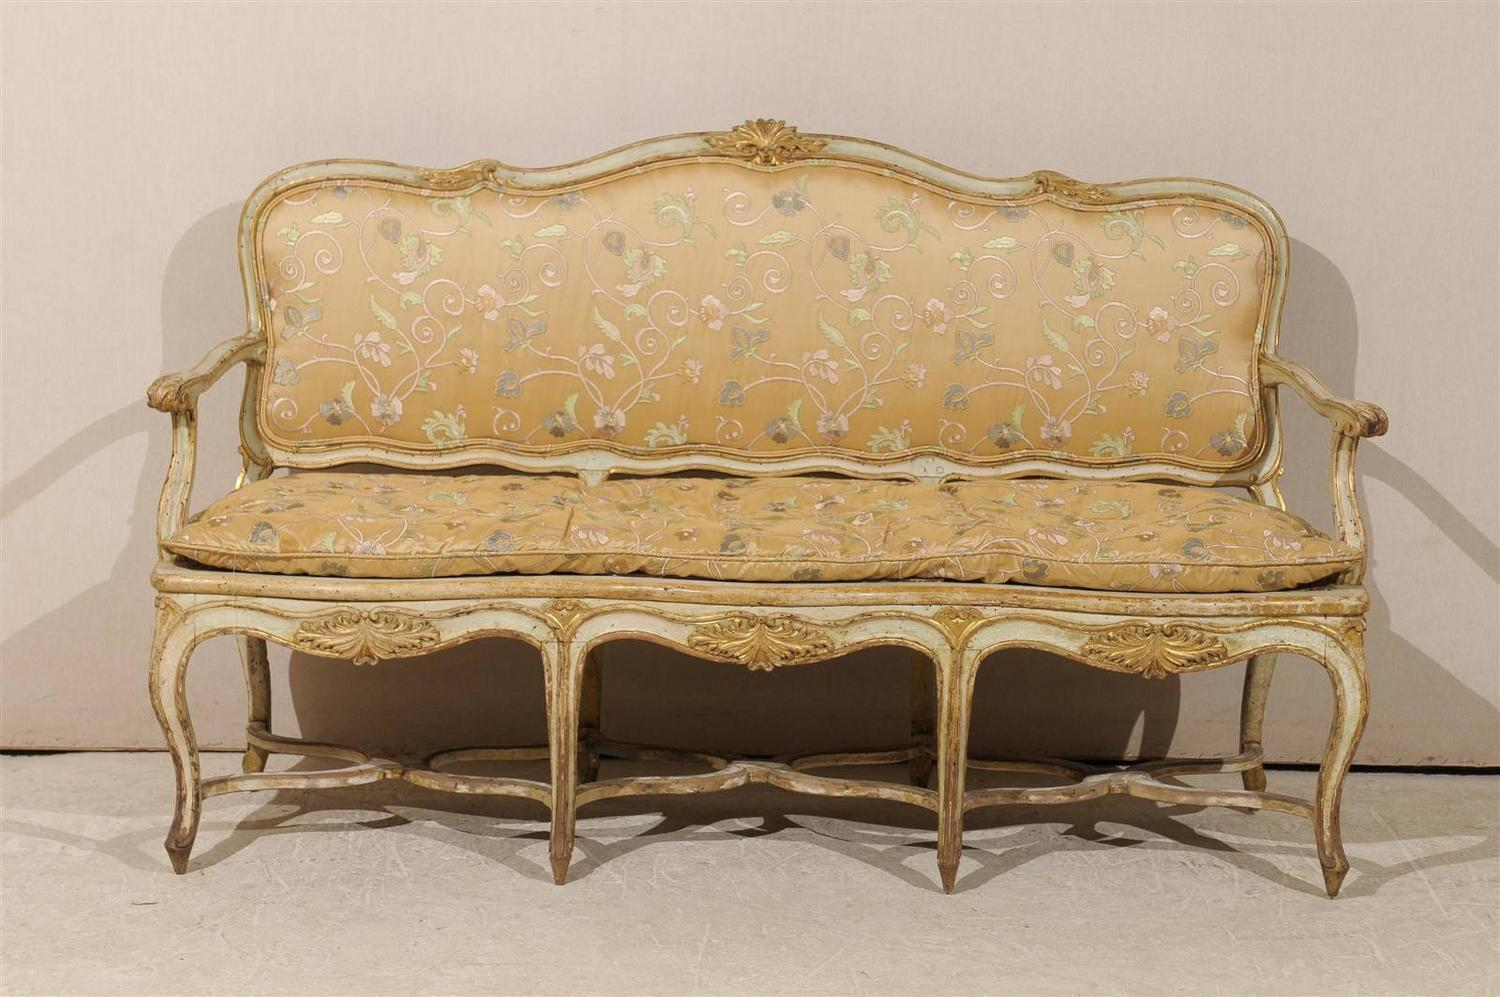 French 18th century sofa canap with original paint for for French canape sofa